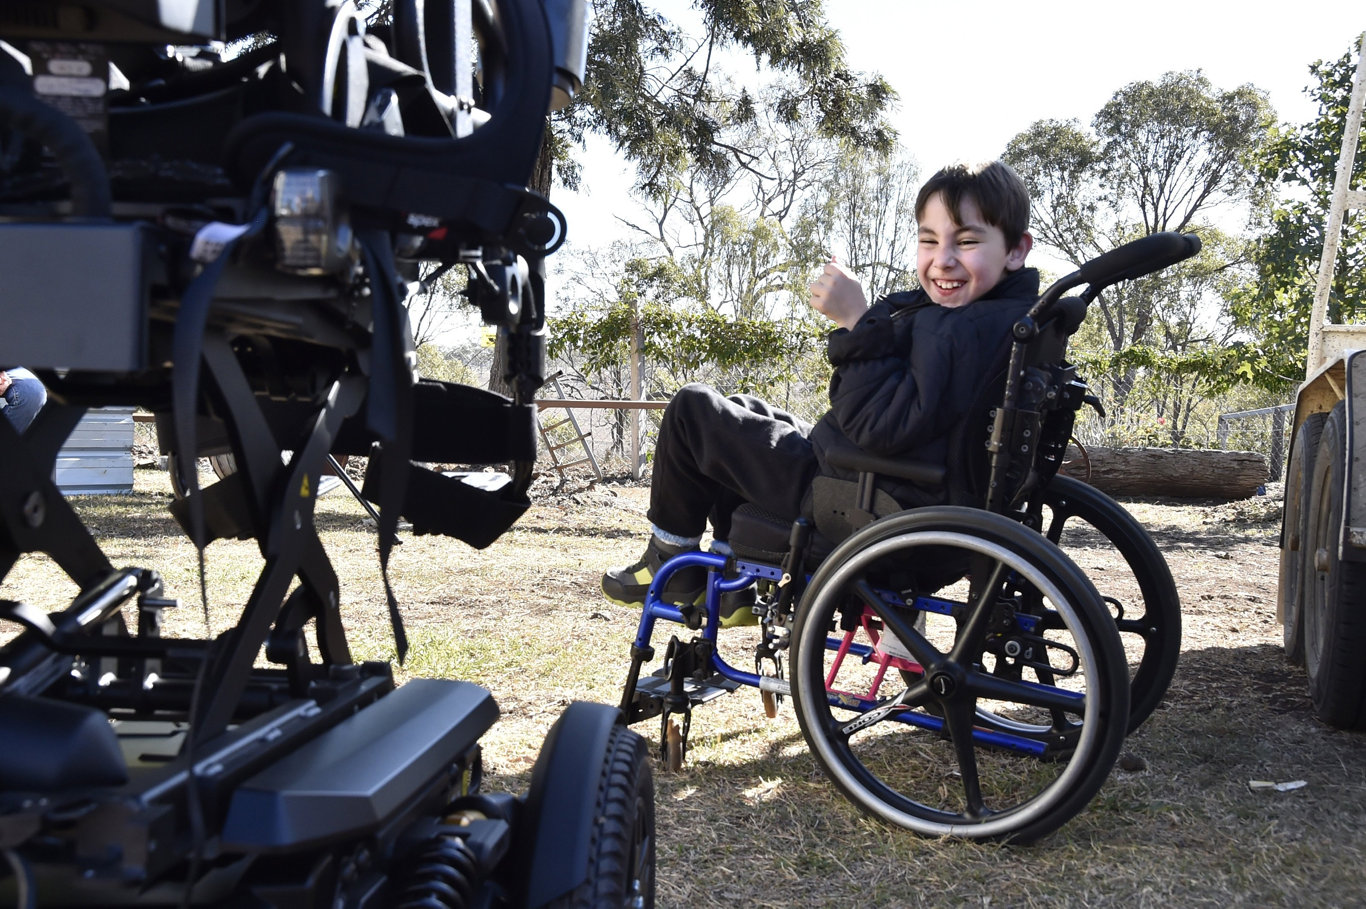 A new wheelchair has finally arrived for nine-year-old, Angus Hopkins. The long awaited delivery on Sunday will be a life changer for the boy from Nobby. An excited Angus watches on as the adjustments are made to the wheelchair. June 2019